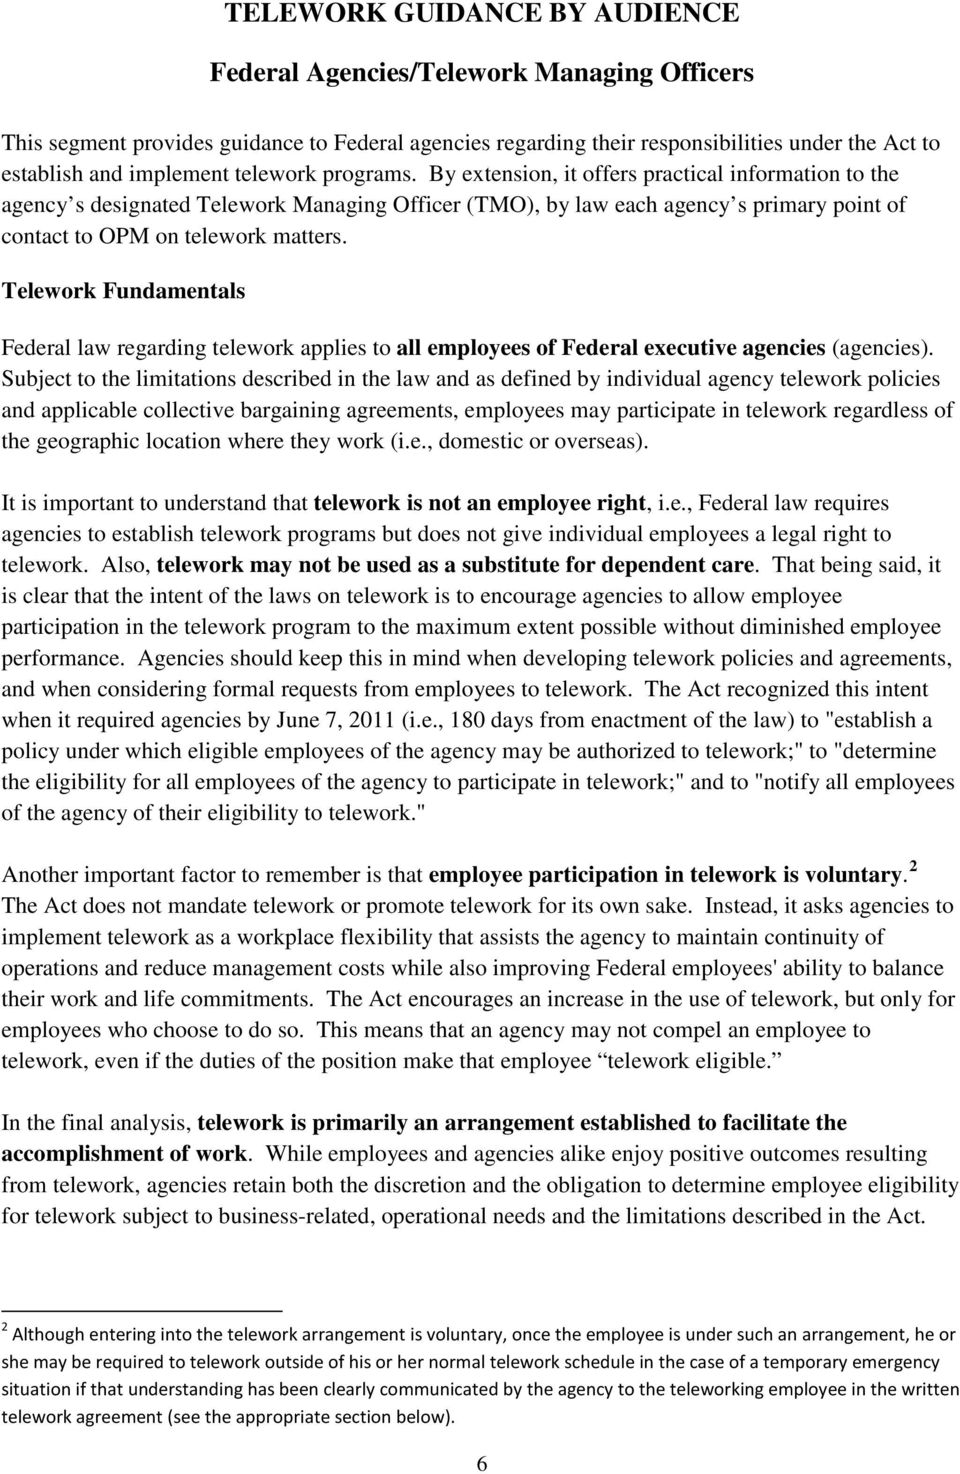 Telework Fundamentals Federal law regarding telework applies to all employees of Federal executive agencies (agencies).